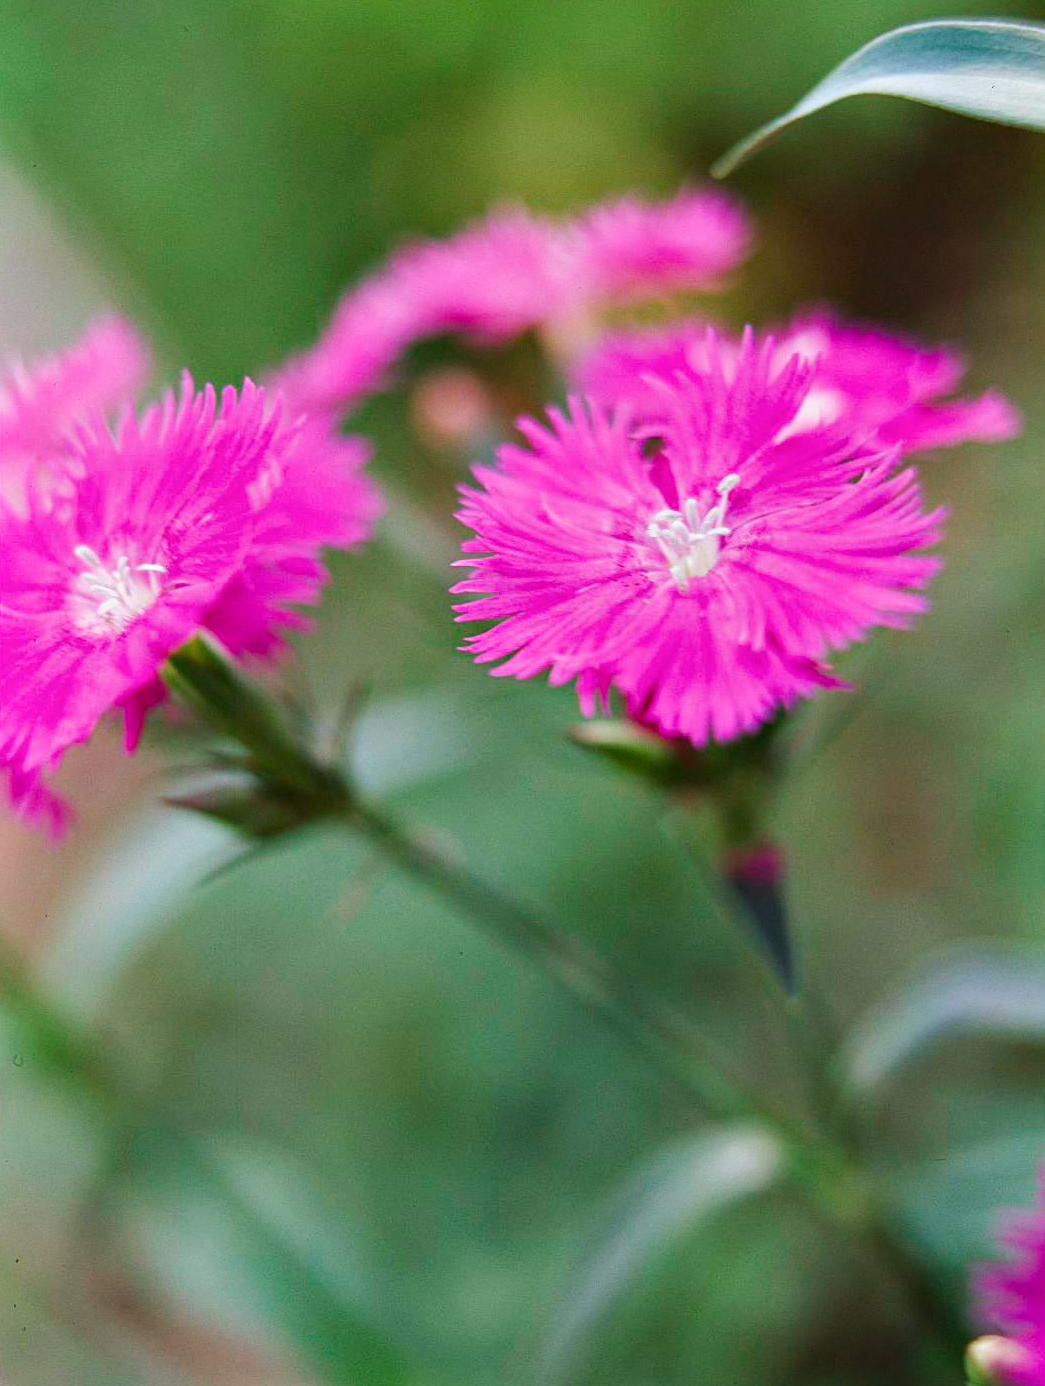 dianthus perennial pink flowers